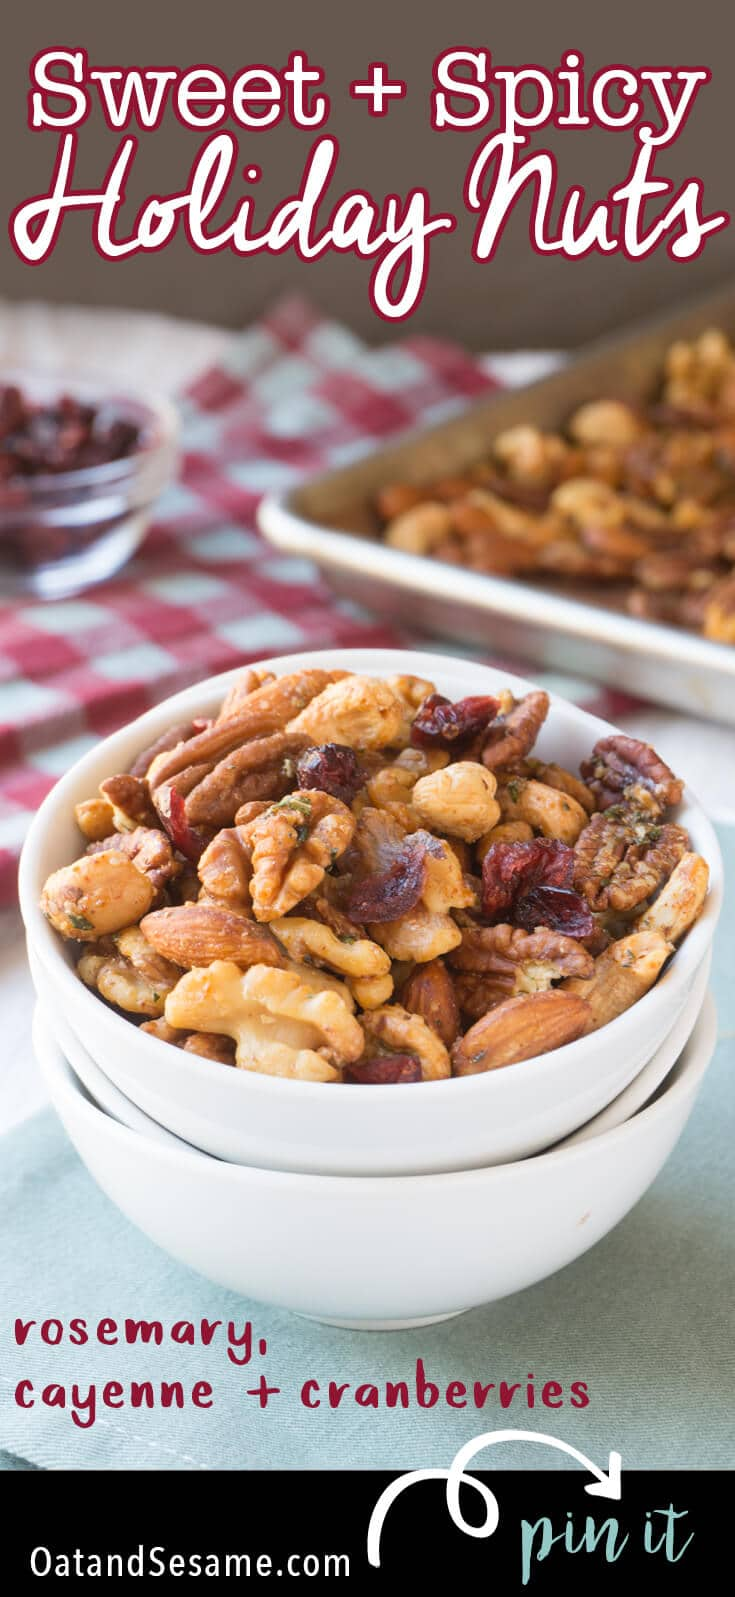 This Sweet and Spicy Holiday Nut Mix pairs perfectly with cocktails and beer. They make the perfect savory snack that balances out all the holiday sweetness. | #HOLIDAY | #APPETIZER | #NUTS | #Recipes at OatandSesame.com